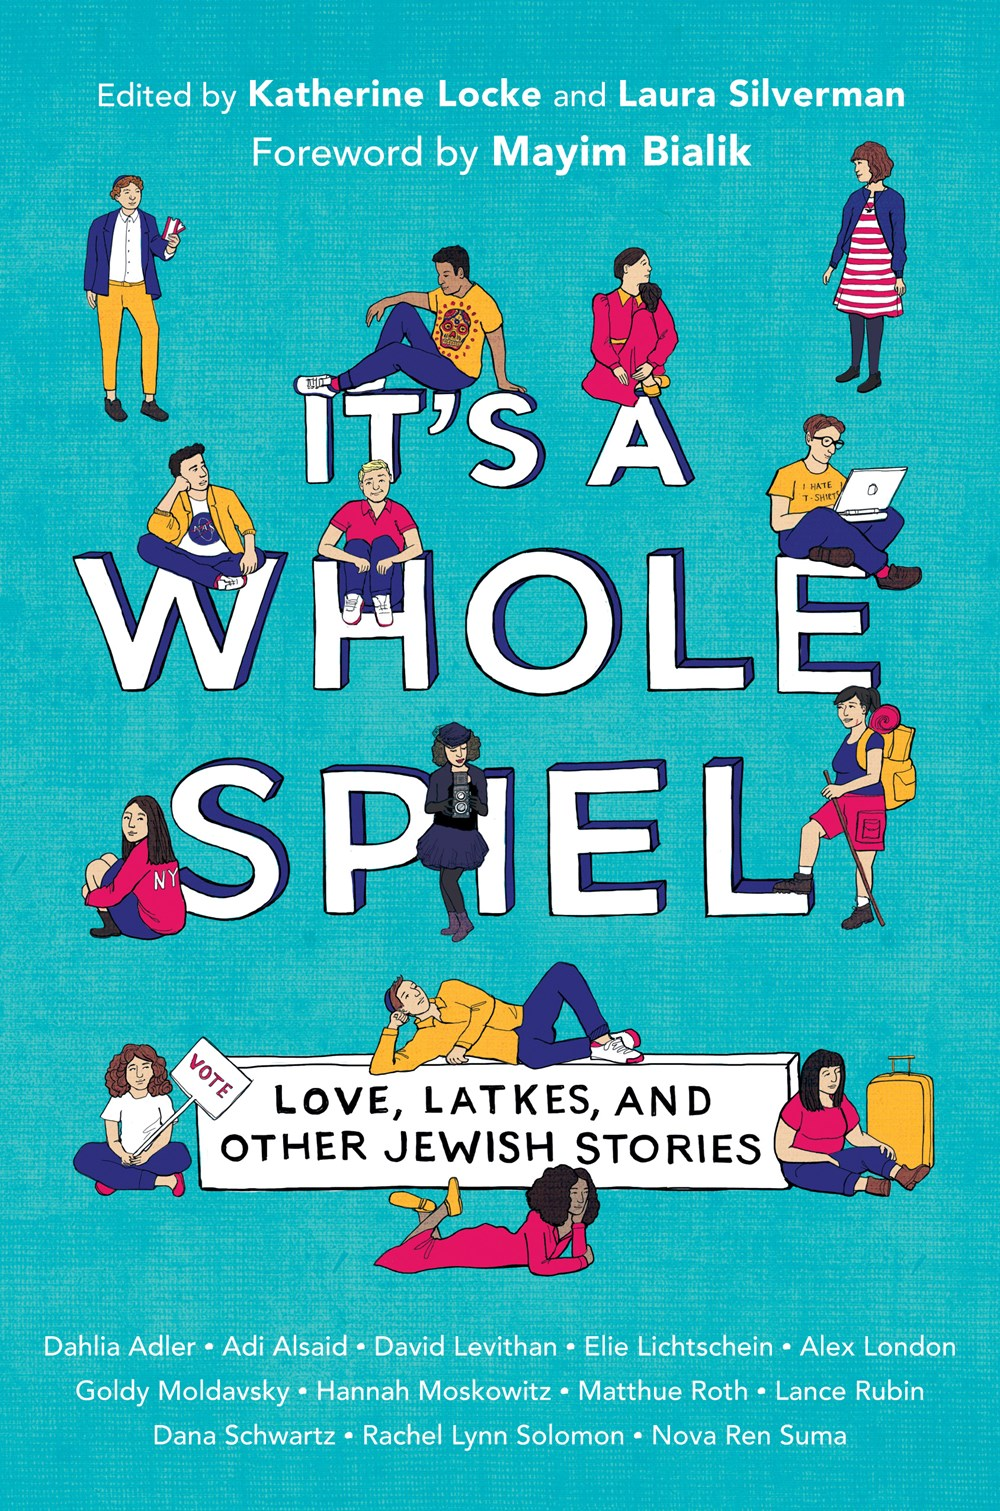 Review of It's a Whole Spiel: Love, Latkes, and Other Jewish Stories